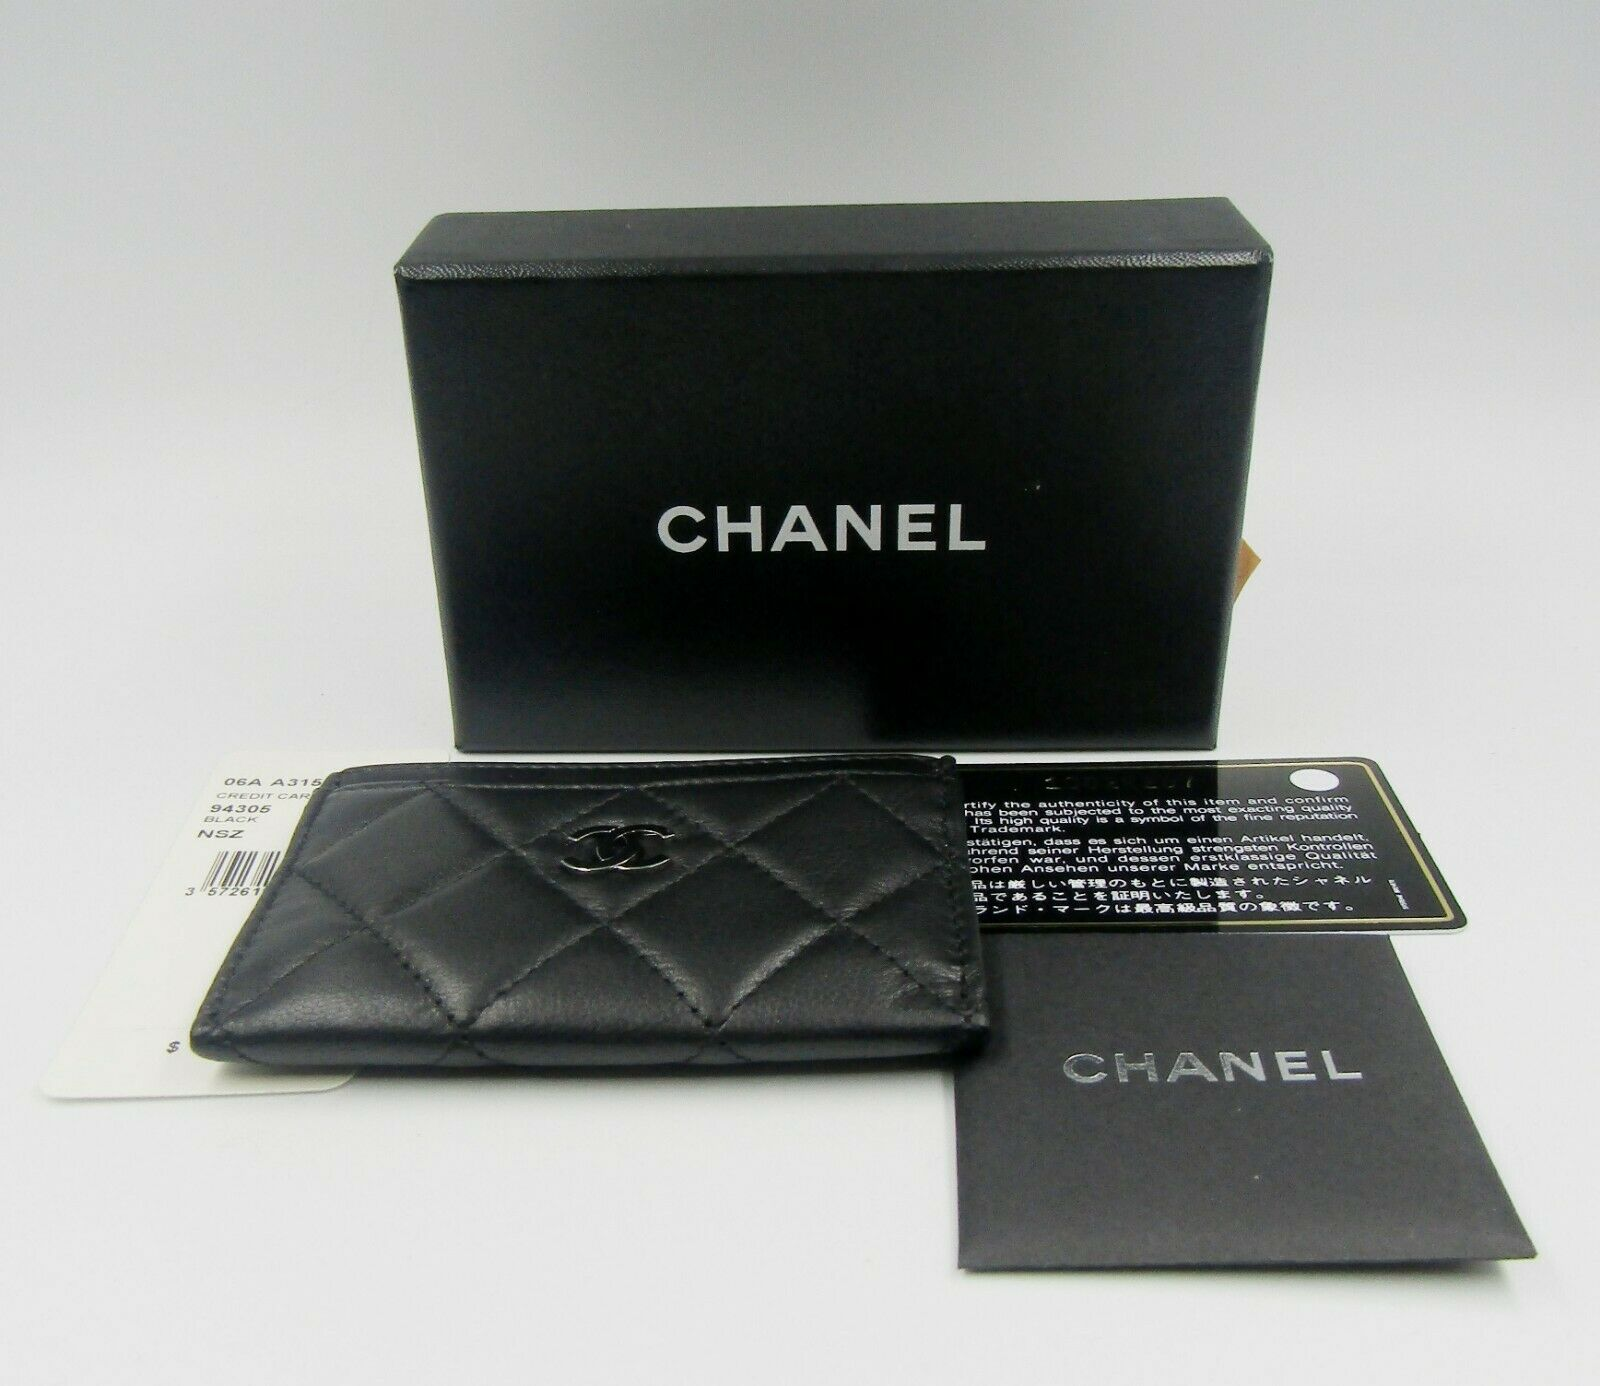 f79b69264371 ... NEW Chanel Credit Card Holder Black Leather Diamond Quilted CC Logo  Classic. Loading.